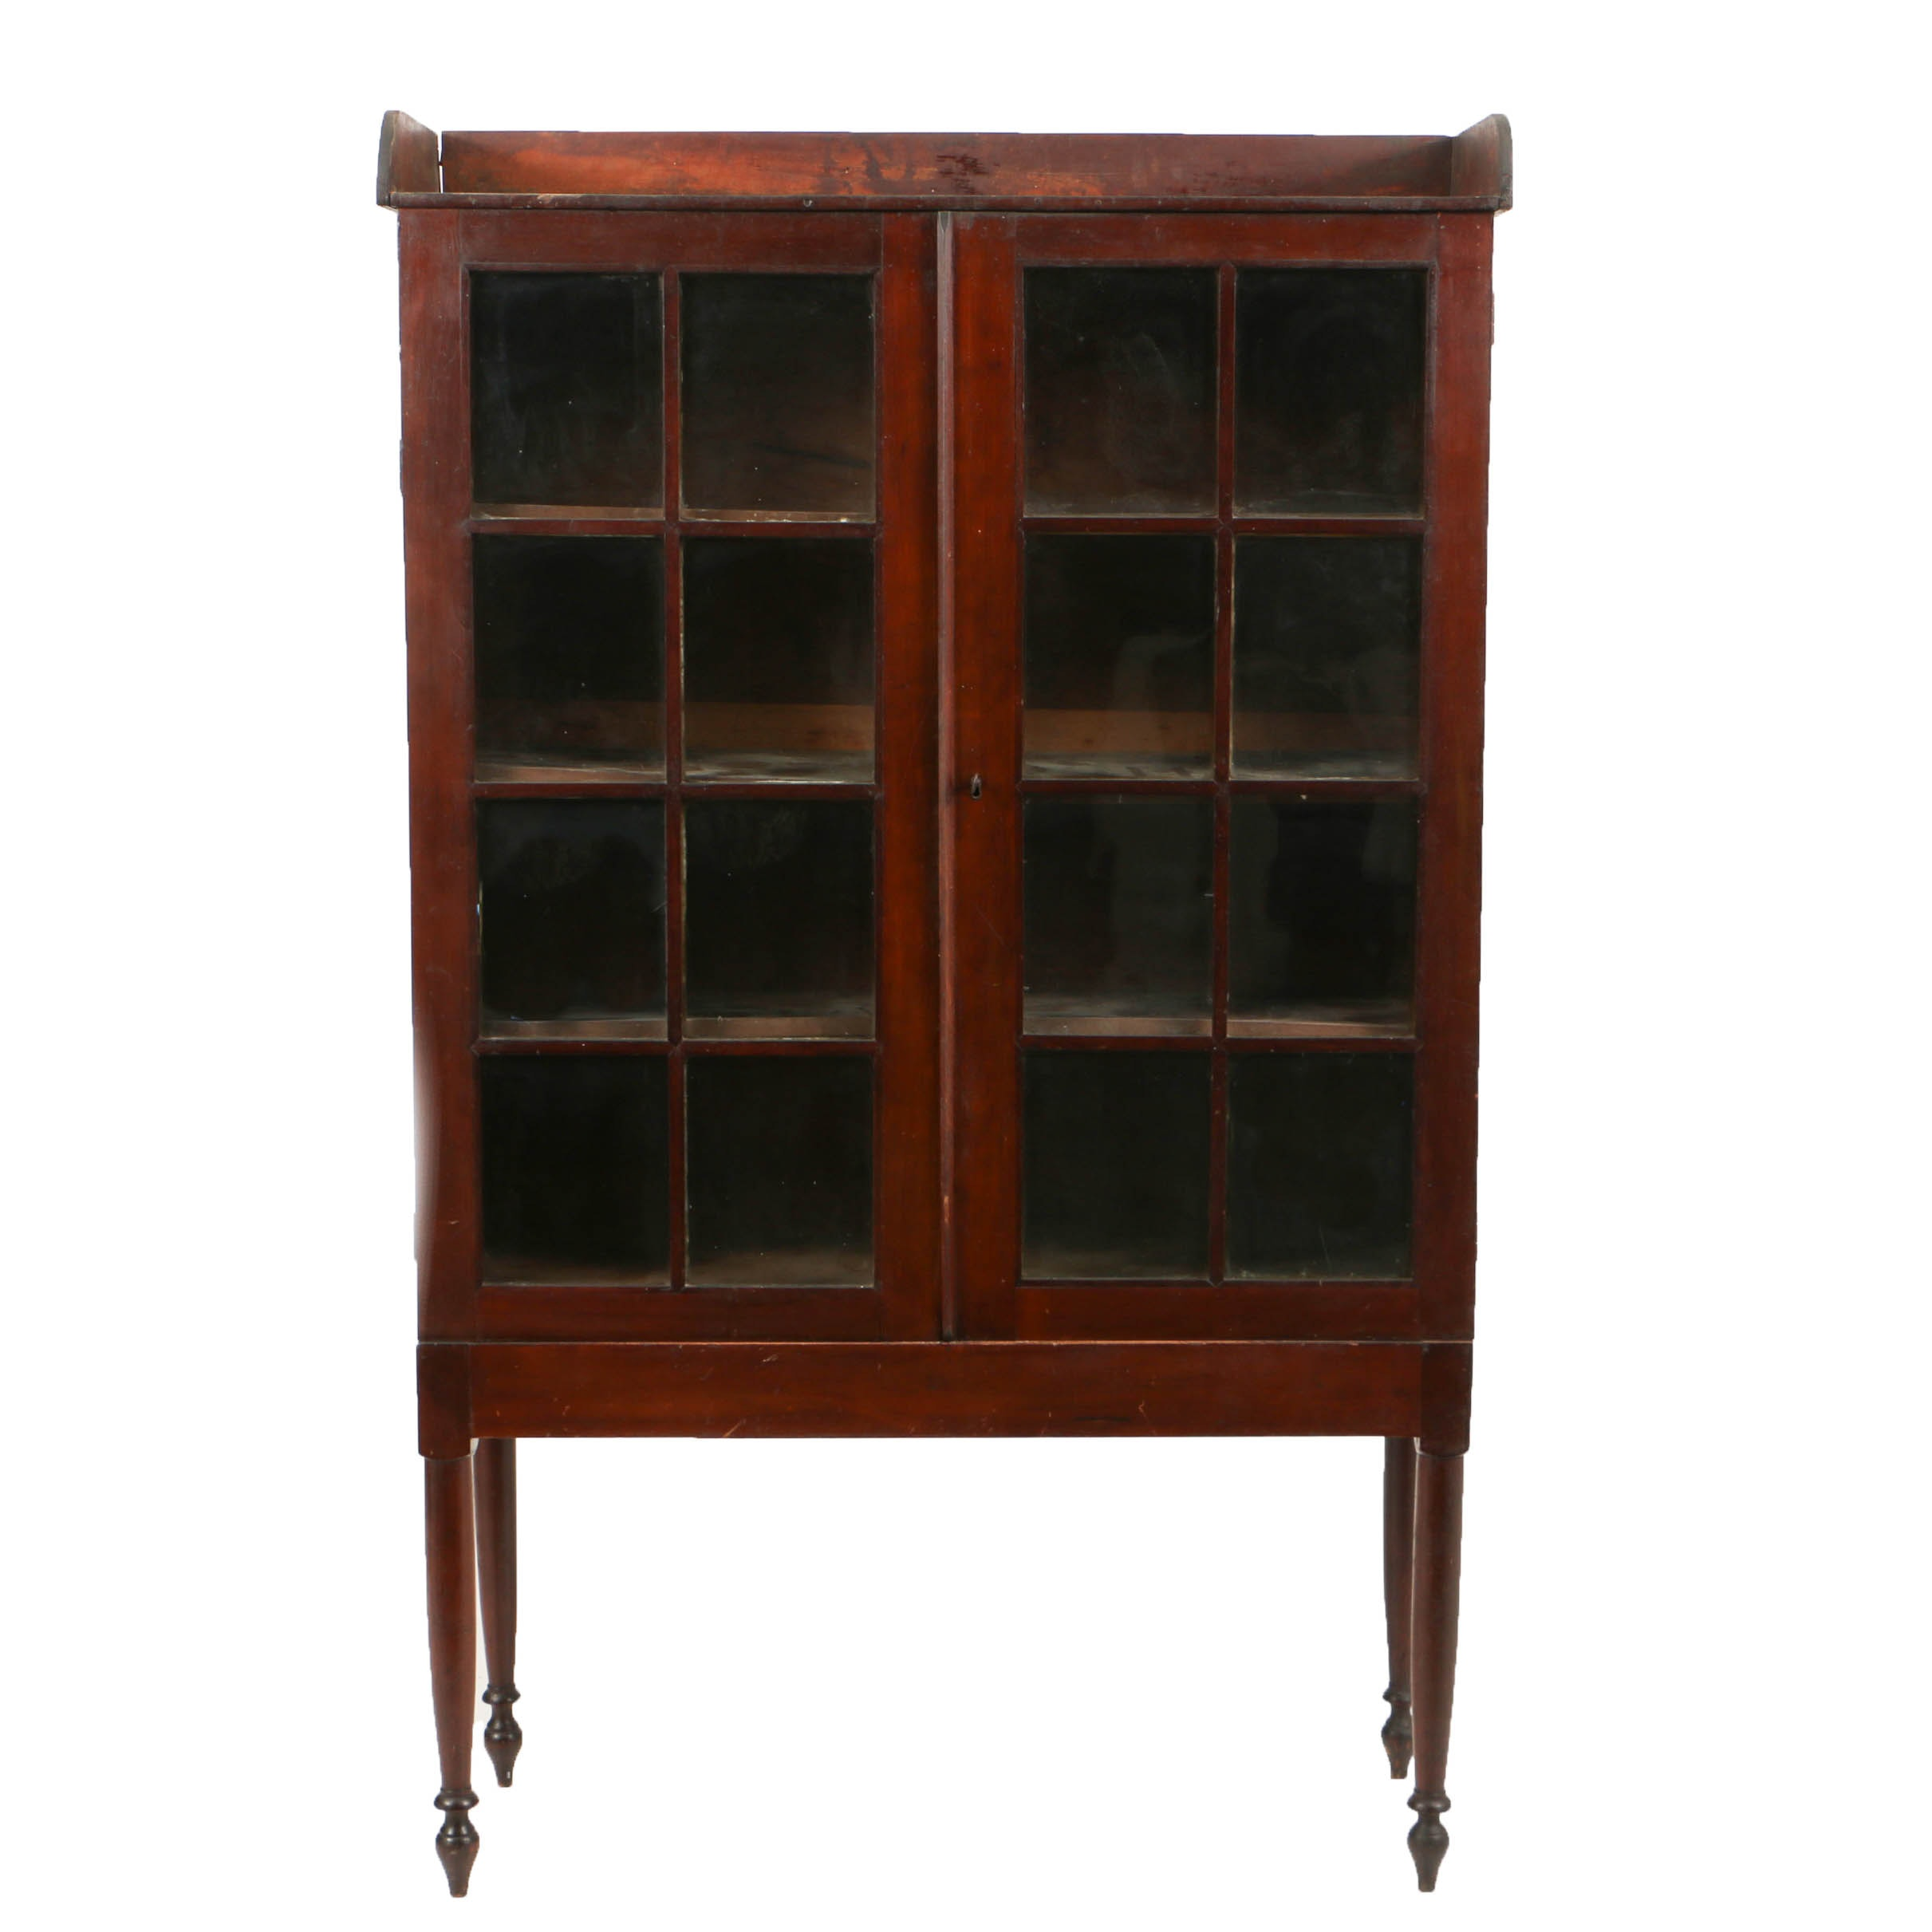 Antique Cherry Southern Glazed-Door Bookcase